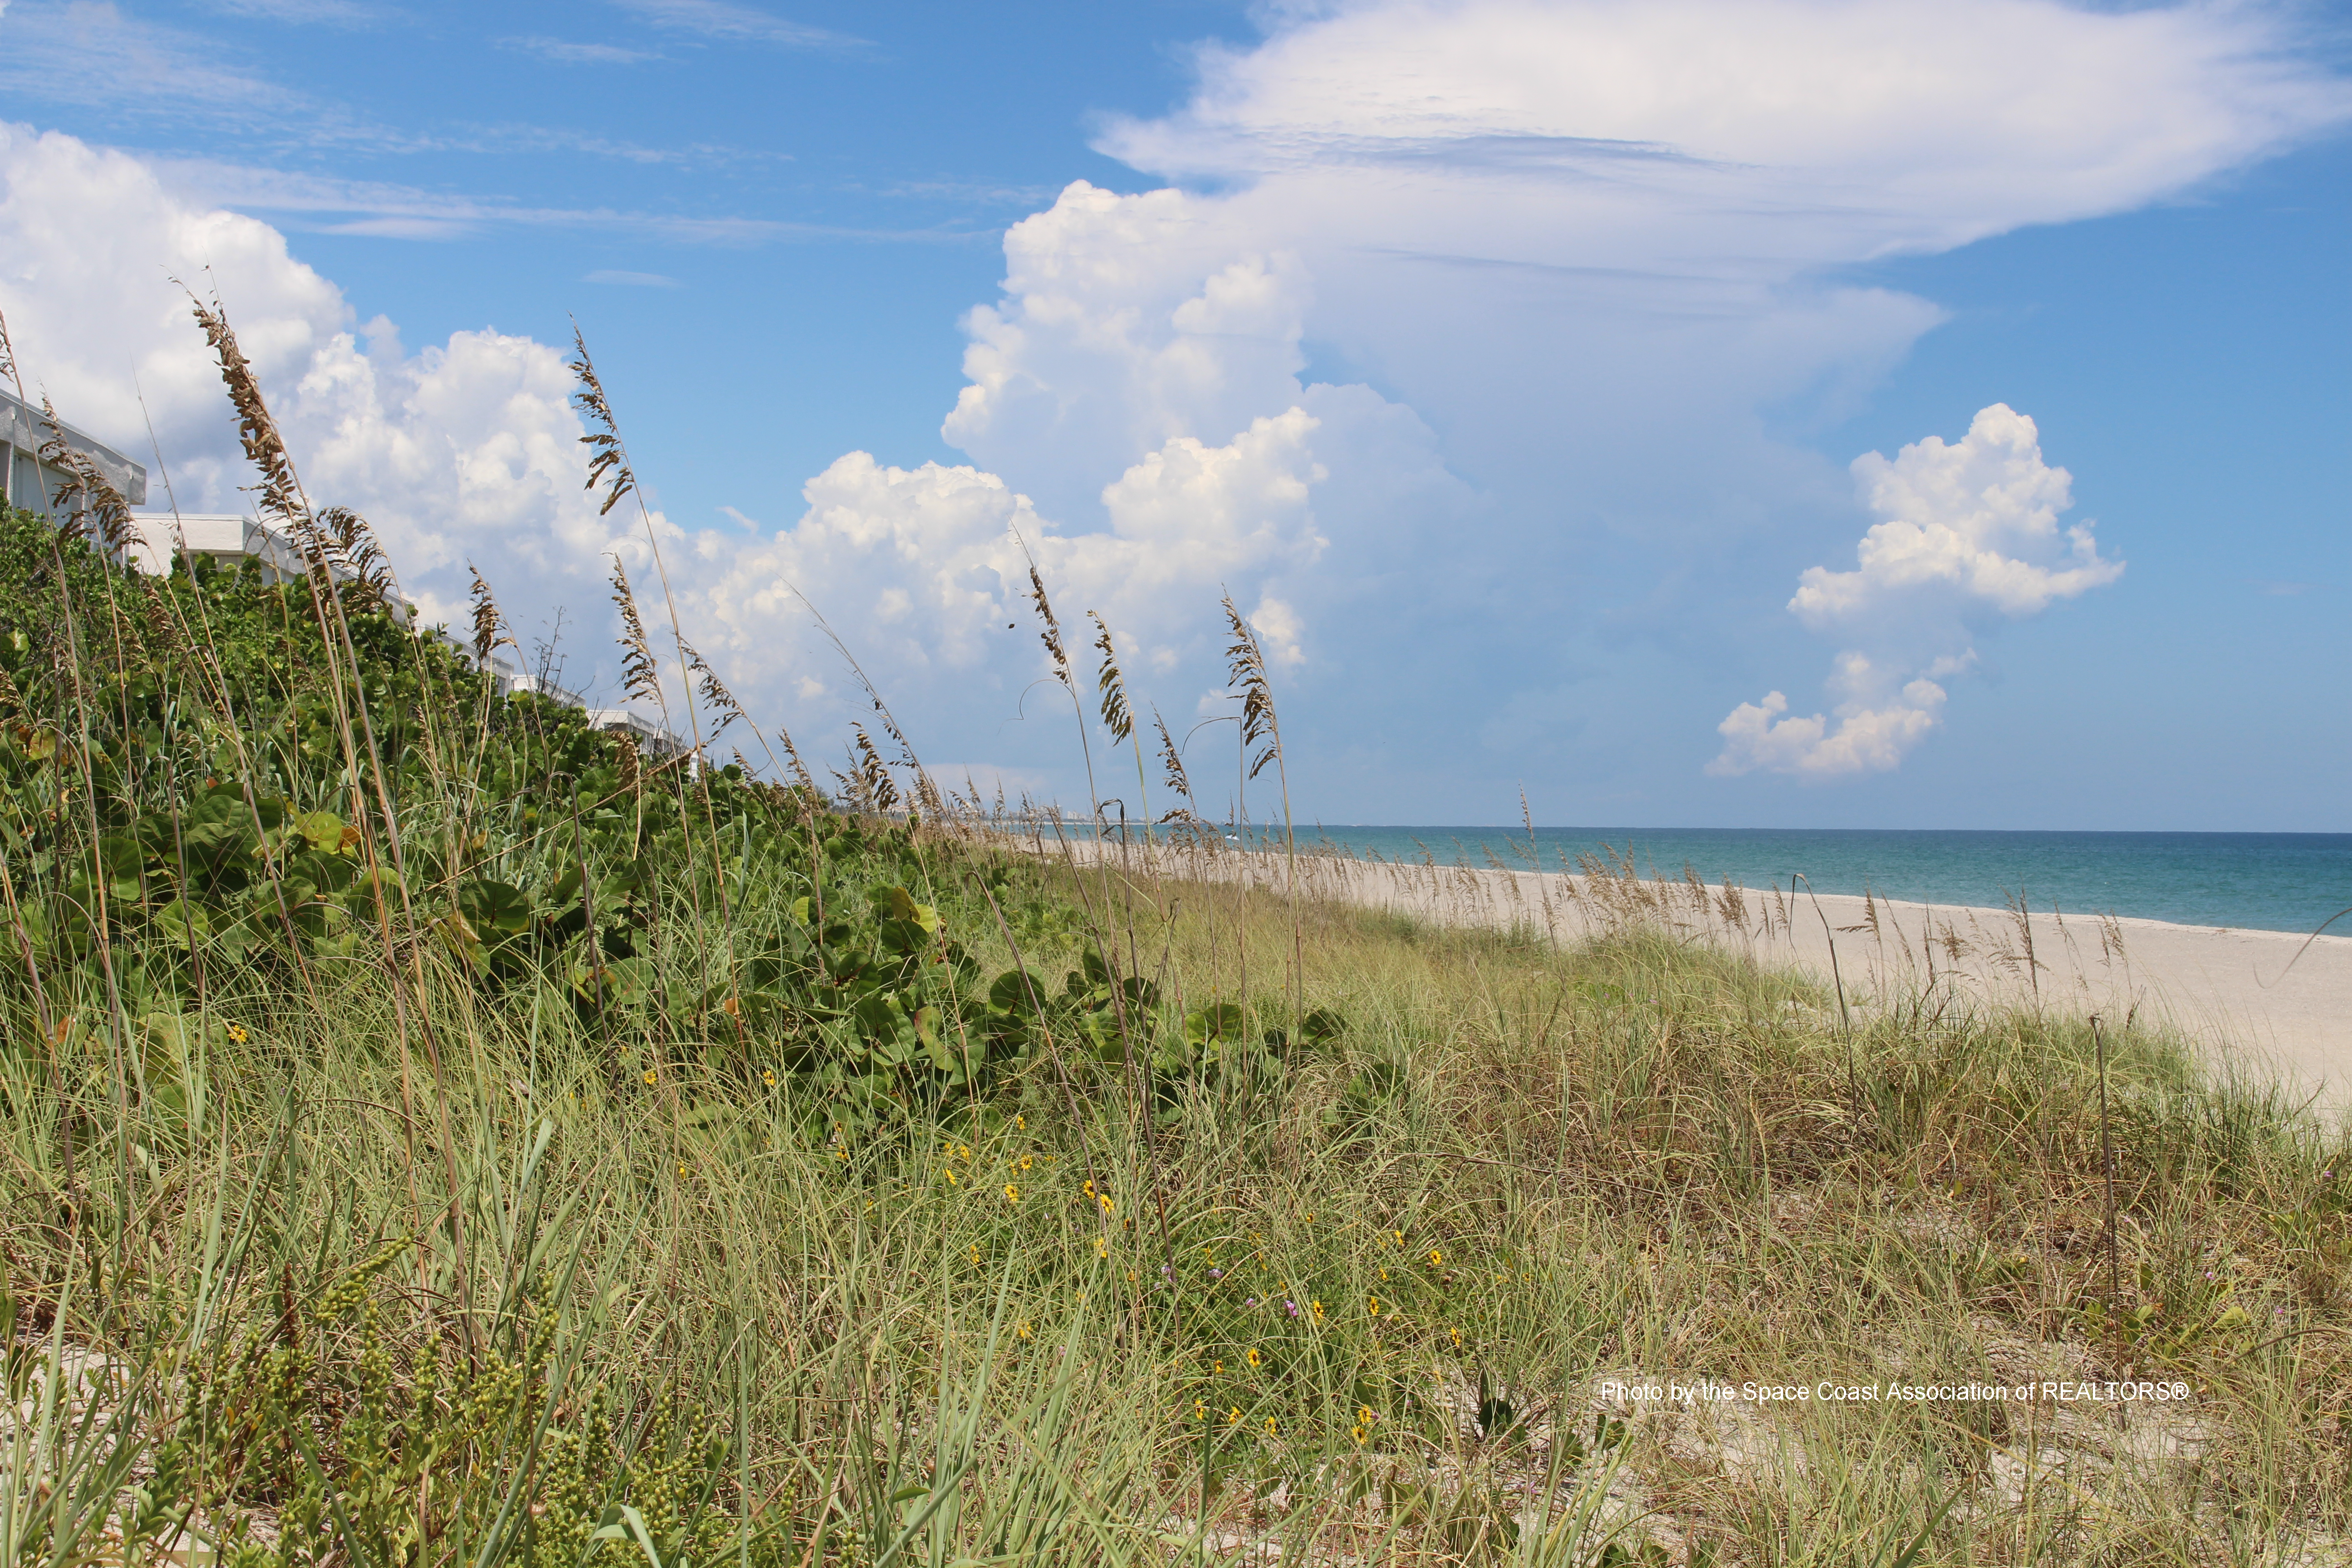 Melbourne Beach, Florida sand dunes with overgrowth of grasses